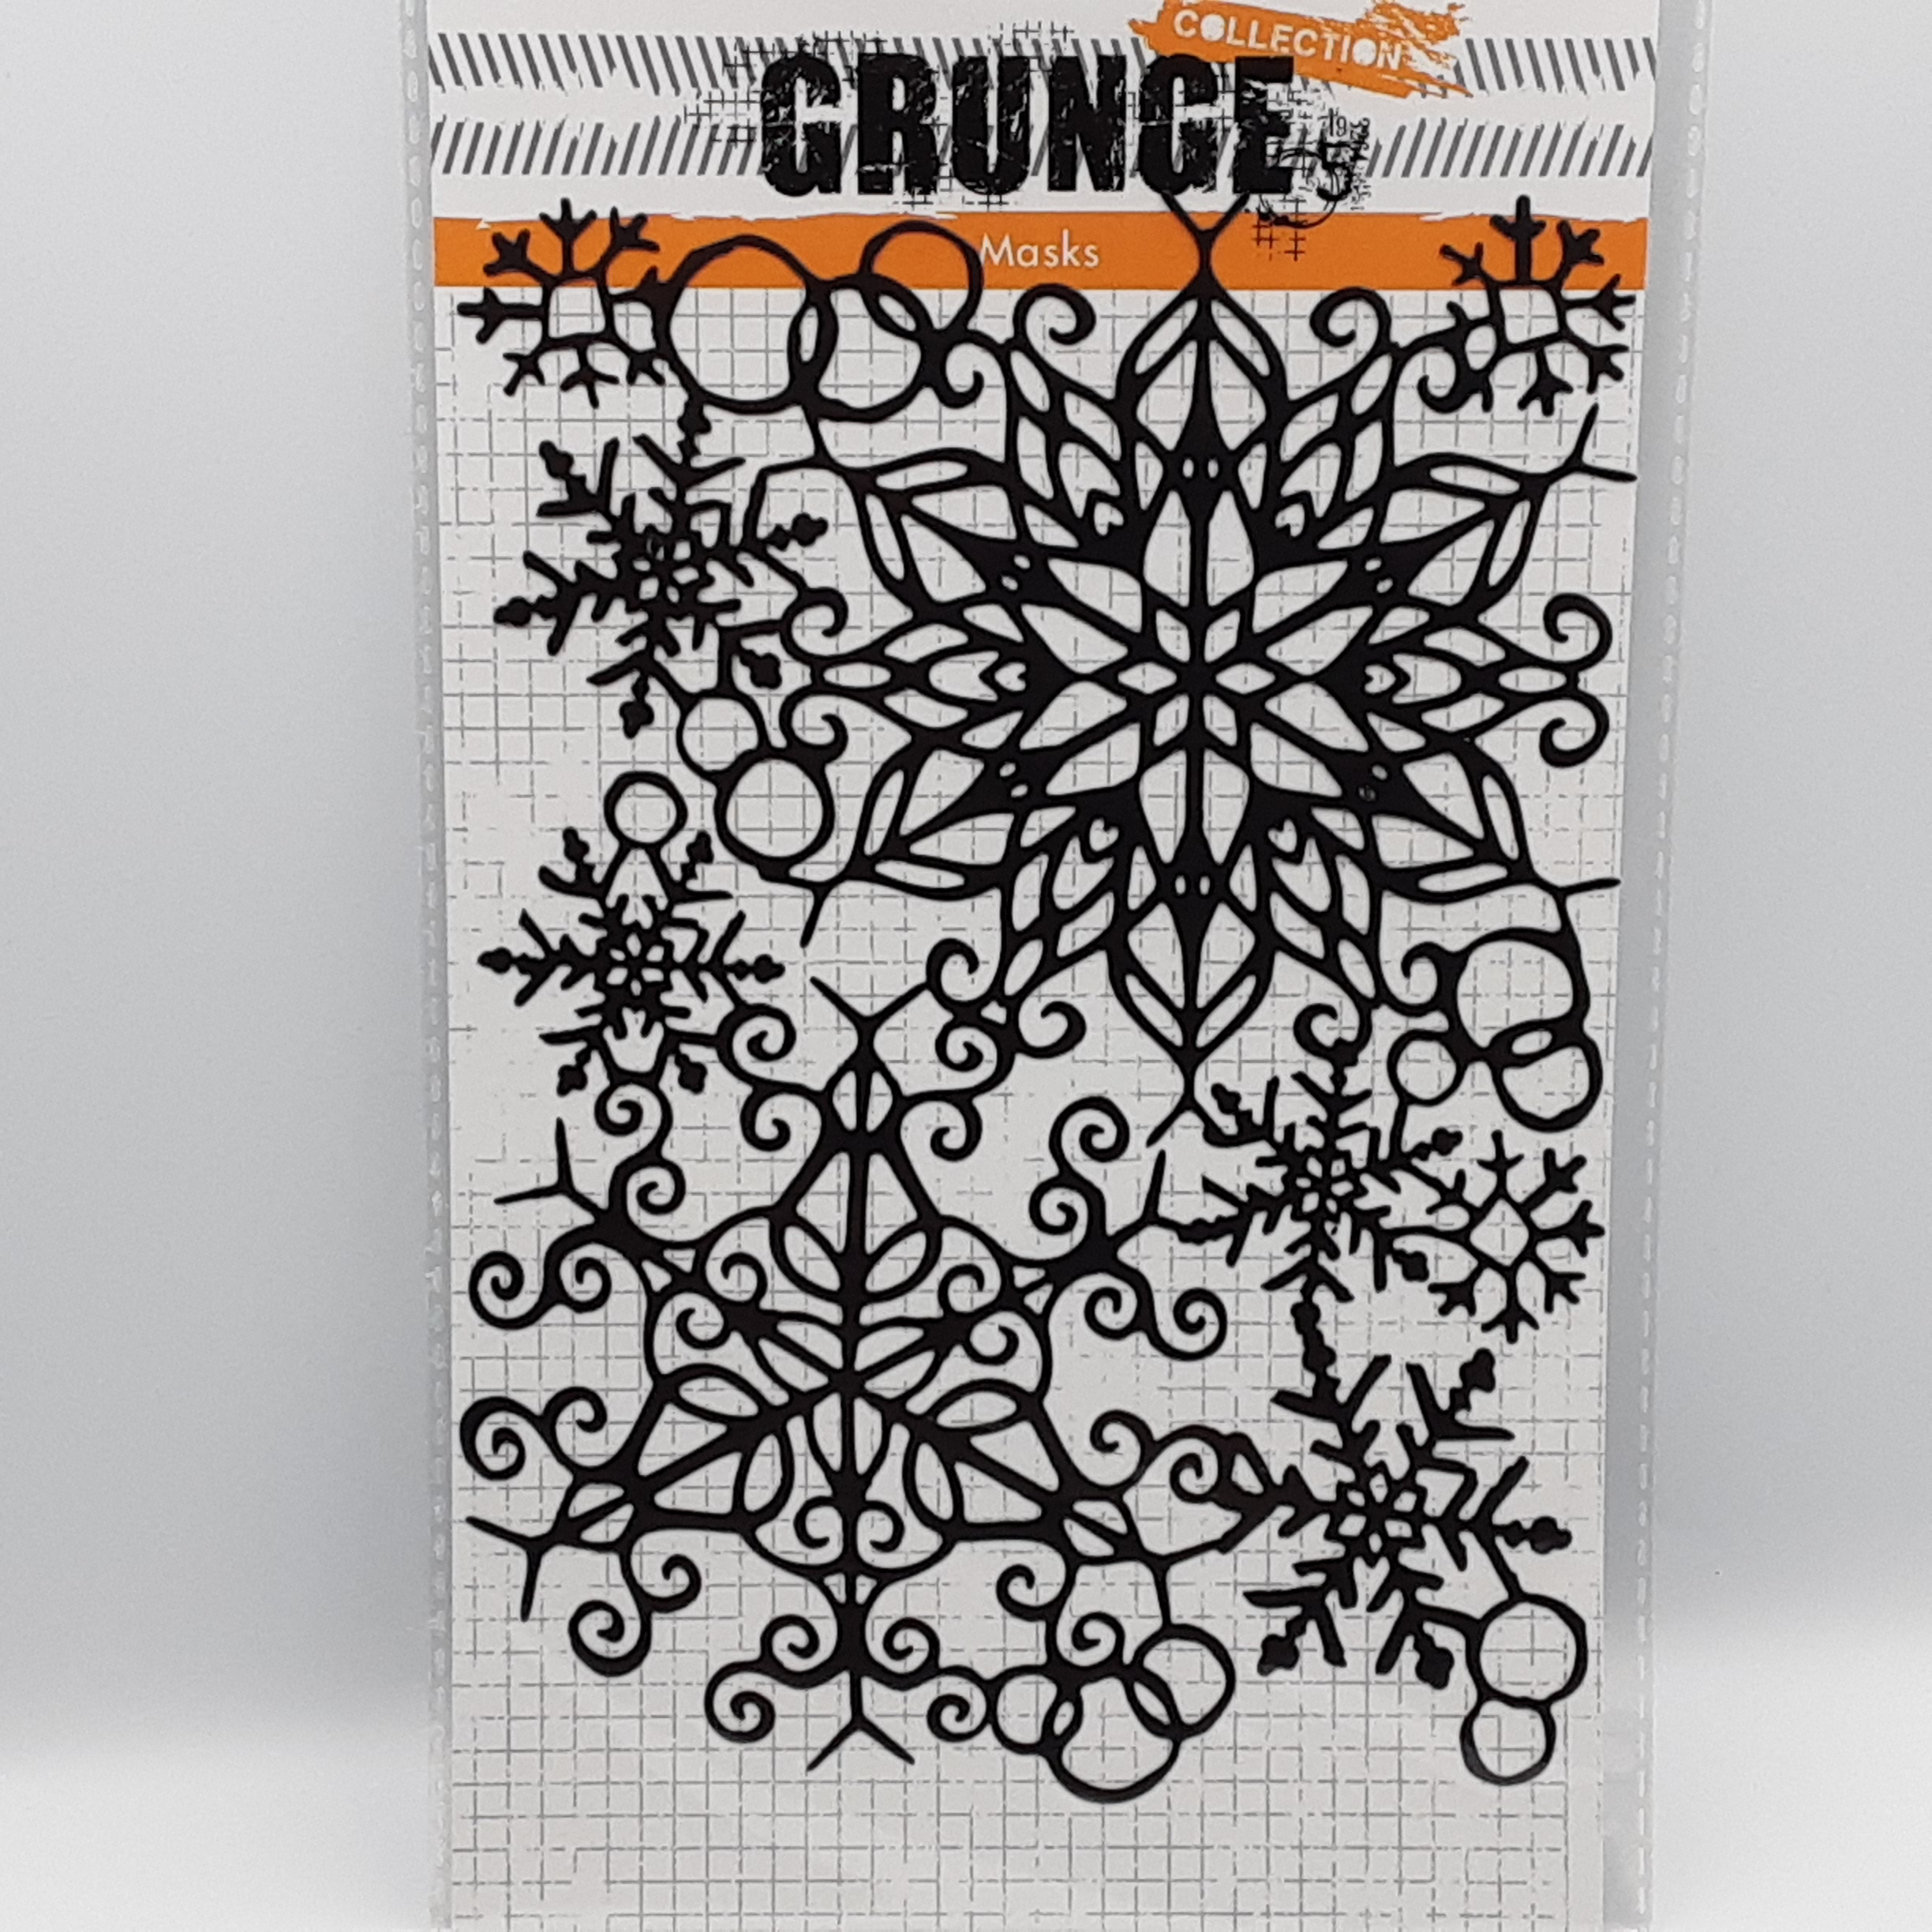 Grunge collection mask nr 52